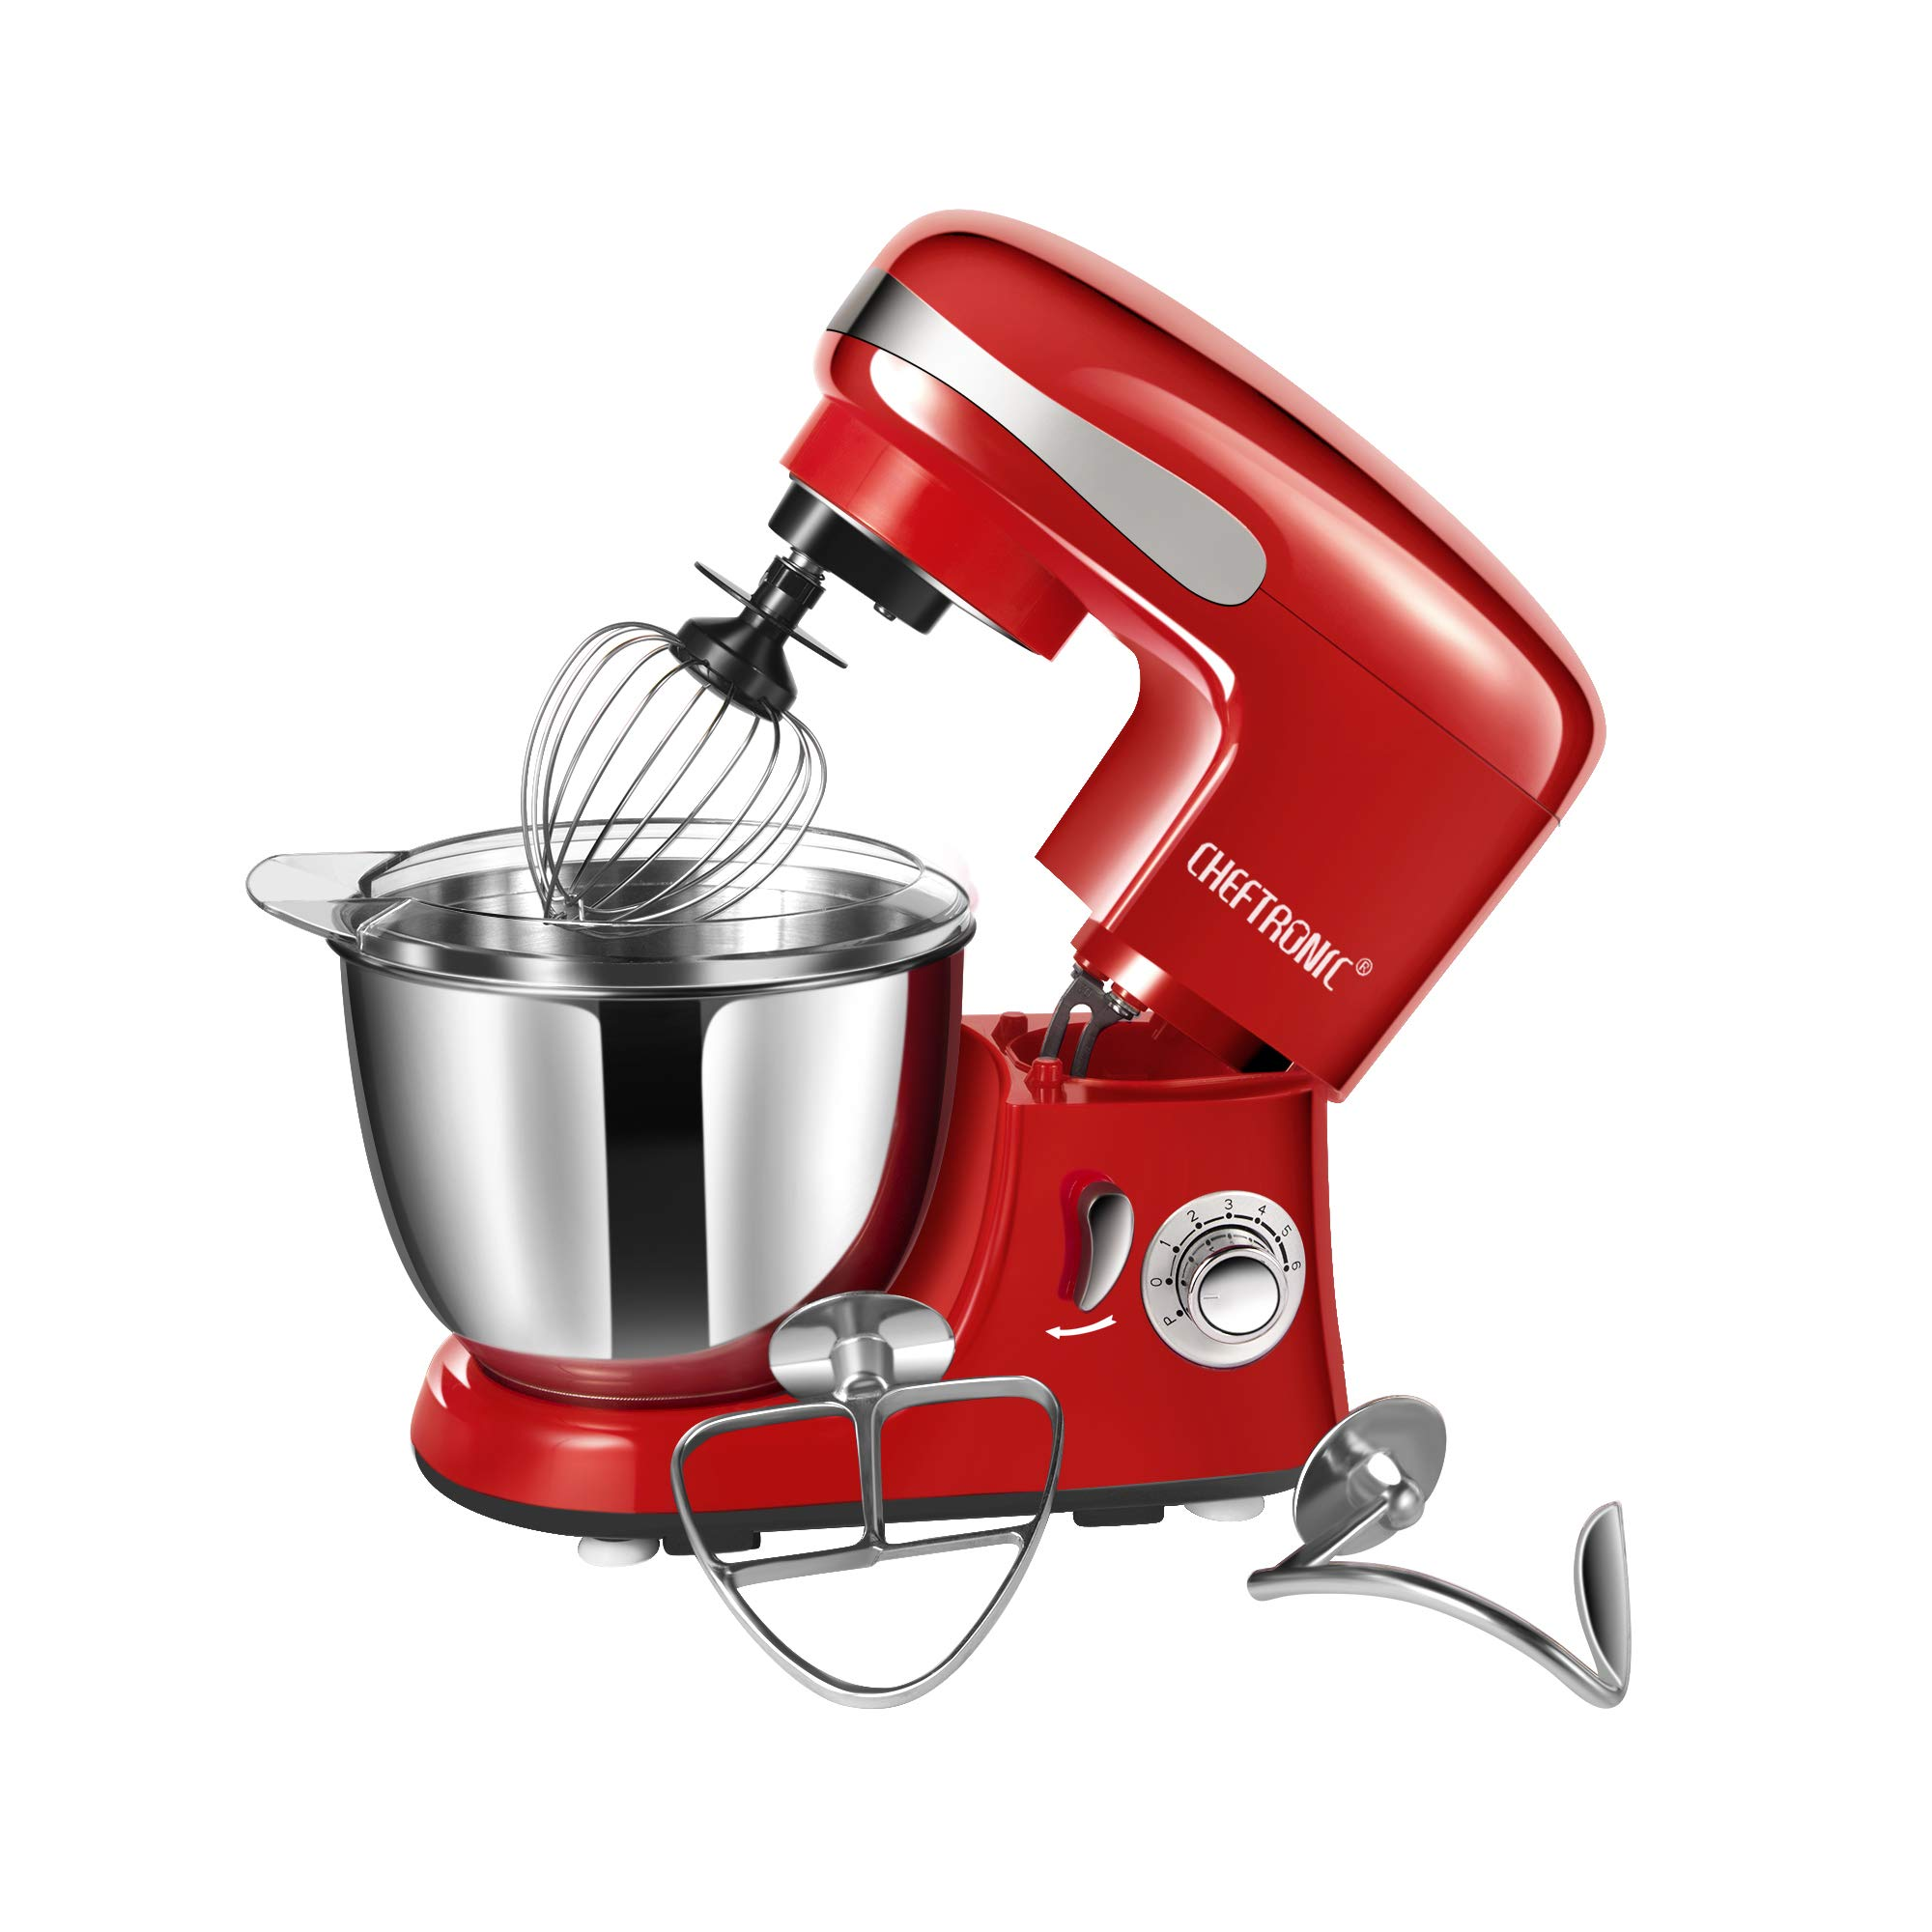 CHEFTRONIC SM928-Red Standing Mixer, One Size, Red by CHEFTRONIC